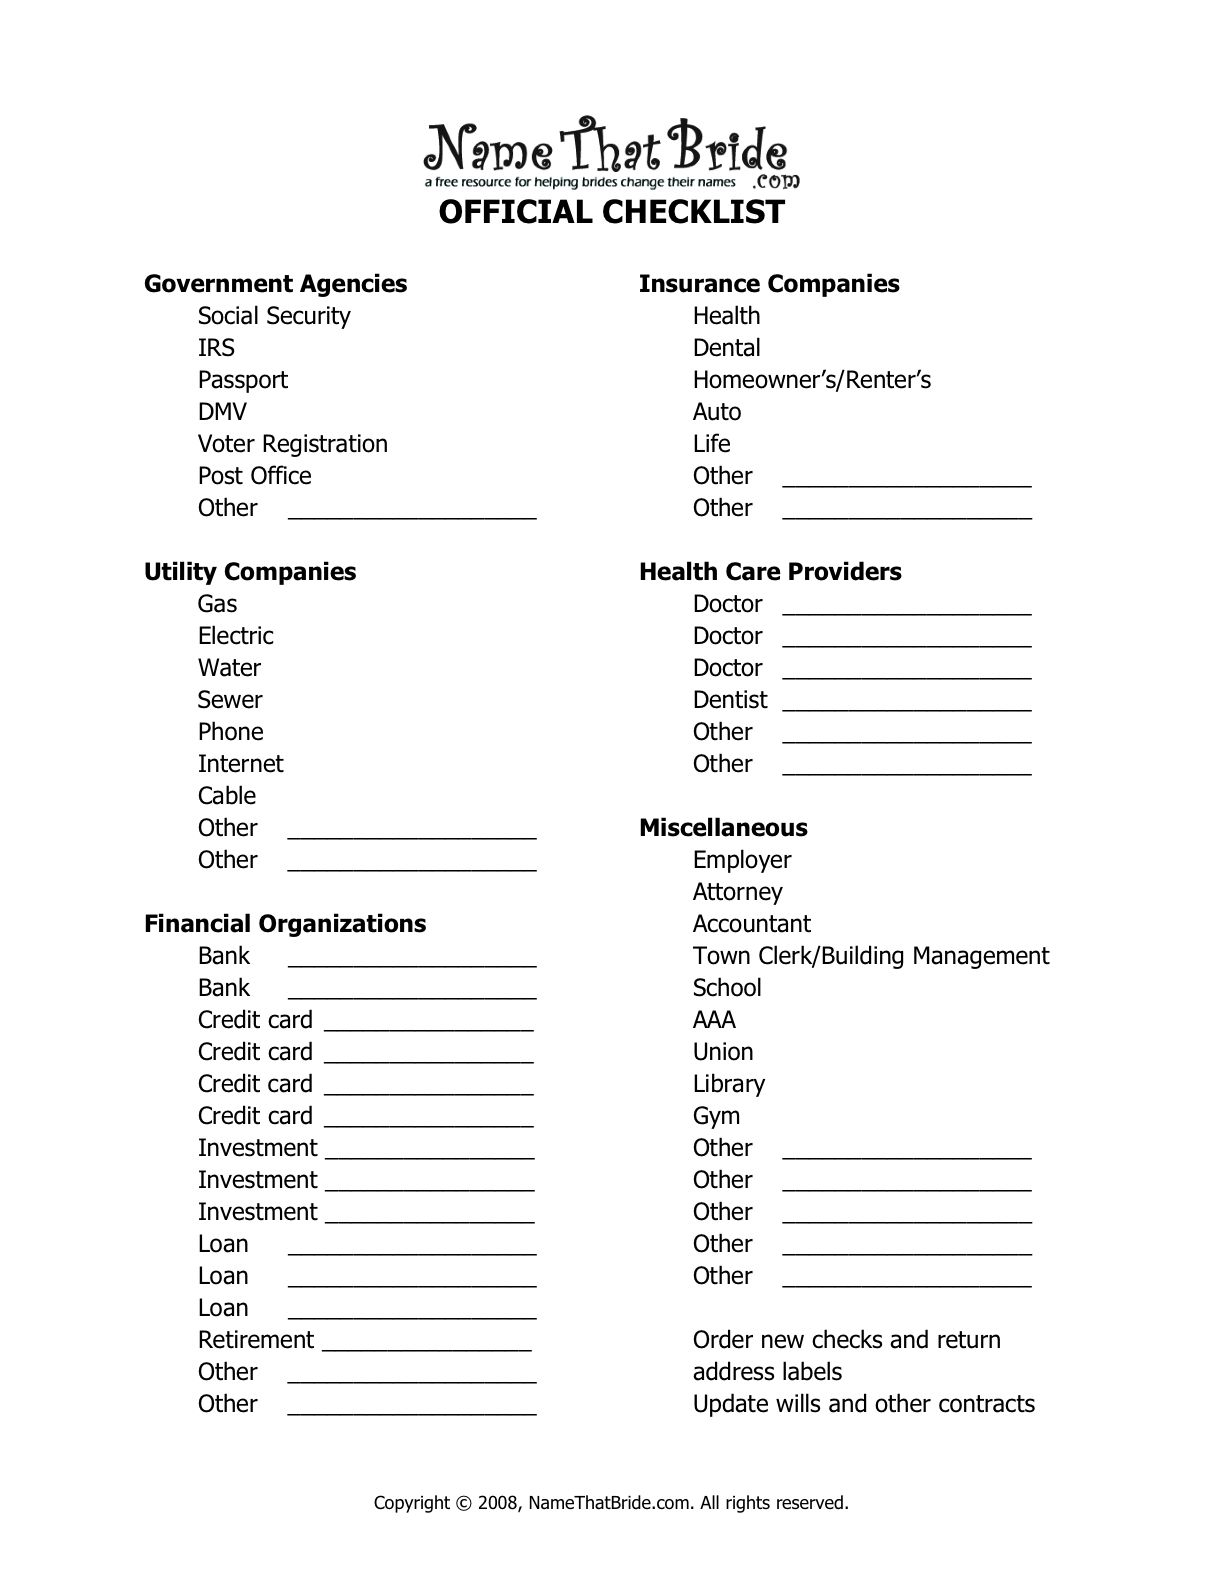 Name Change Checklist Wedding Name Change Wedding Planning